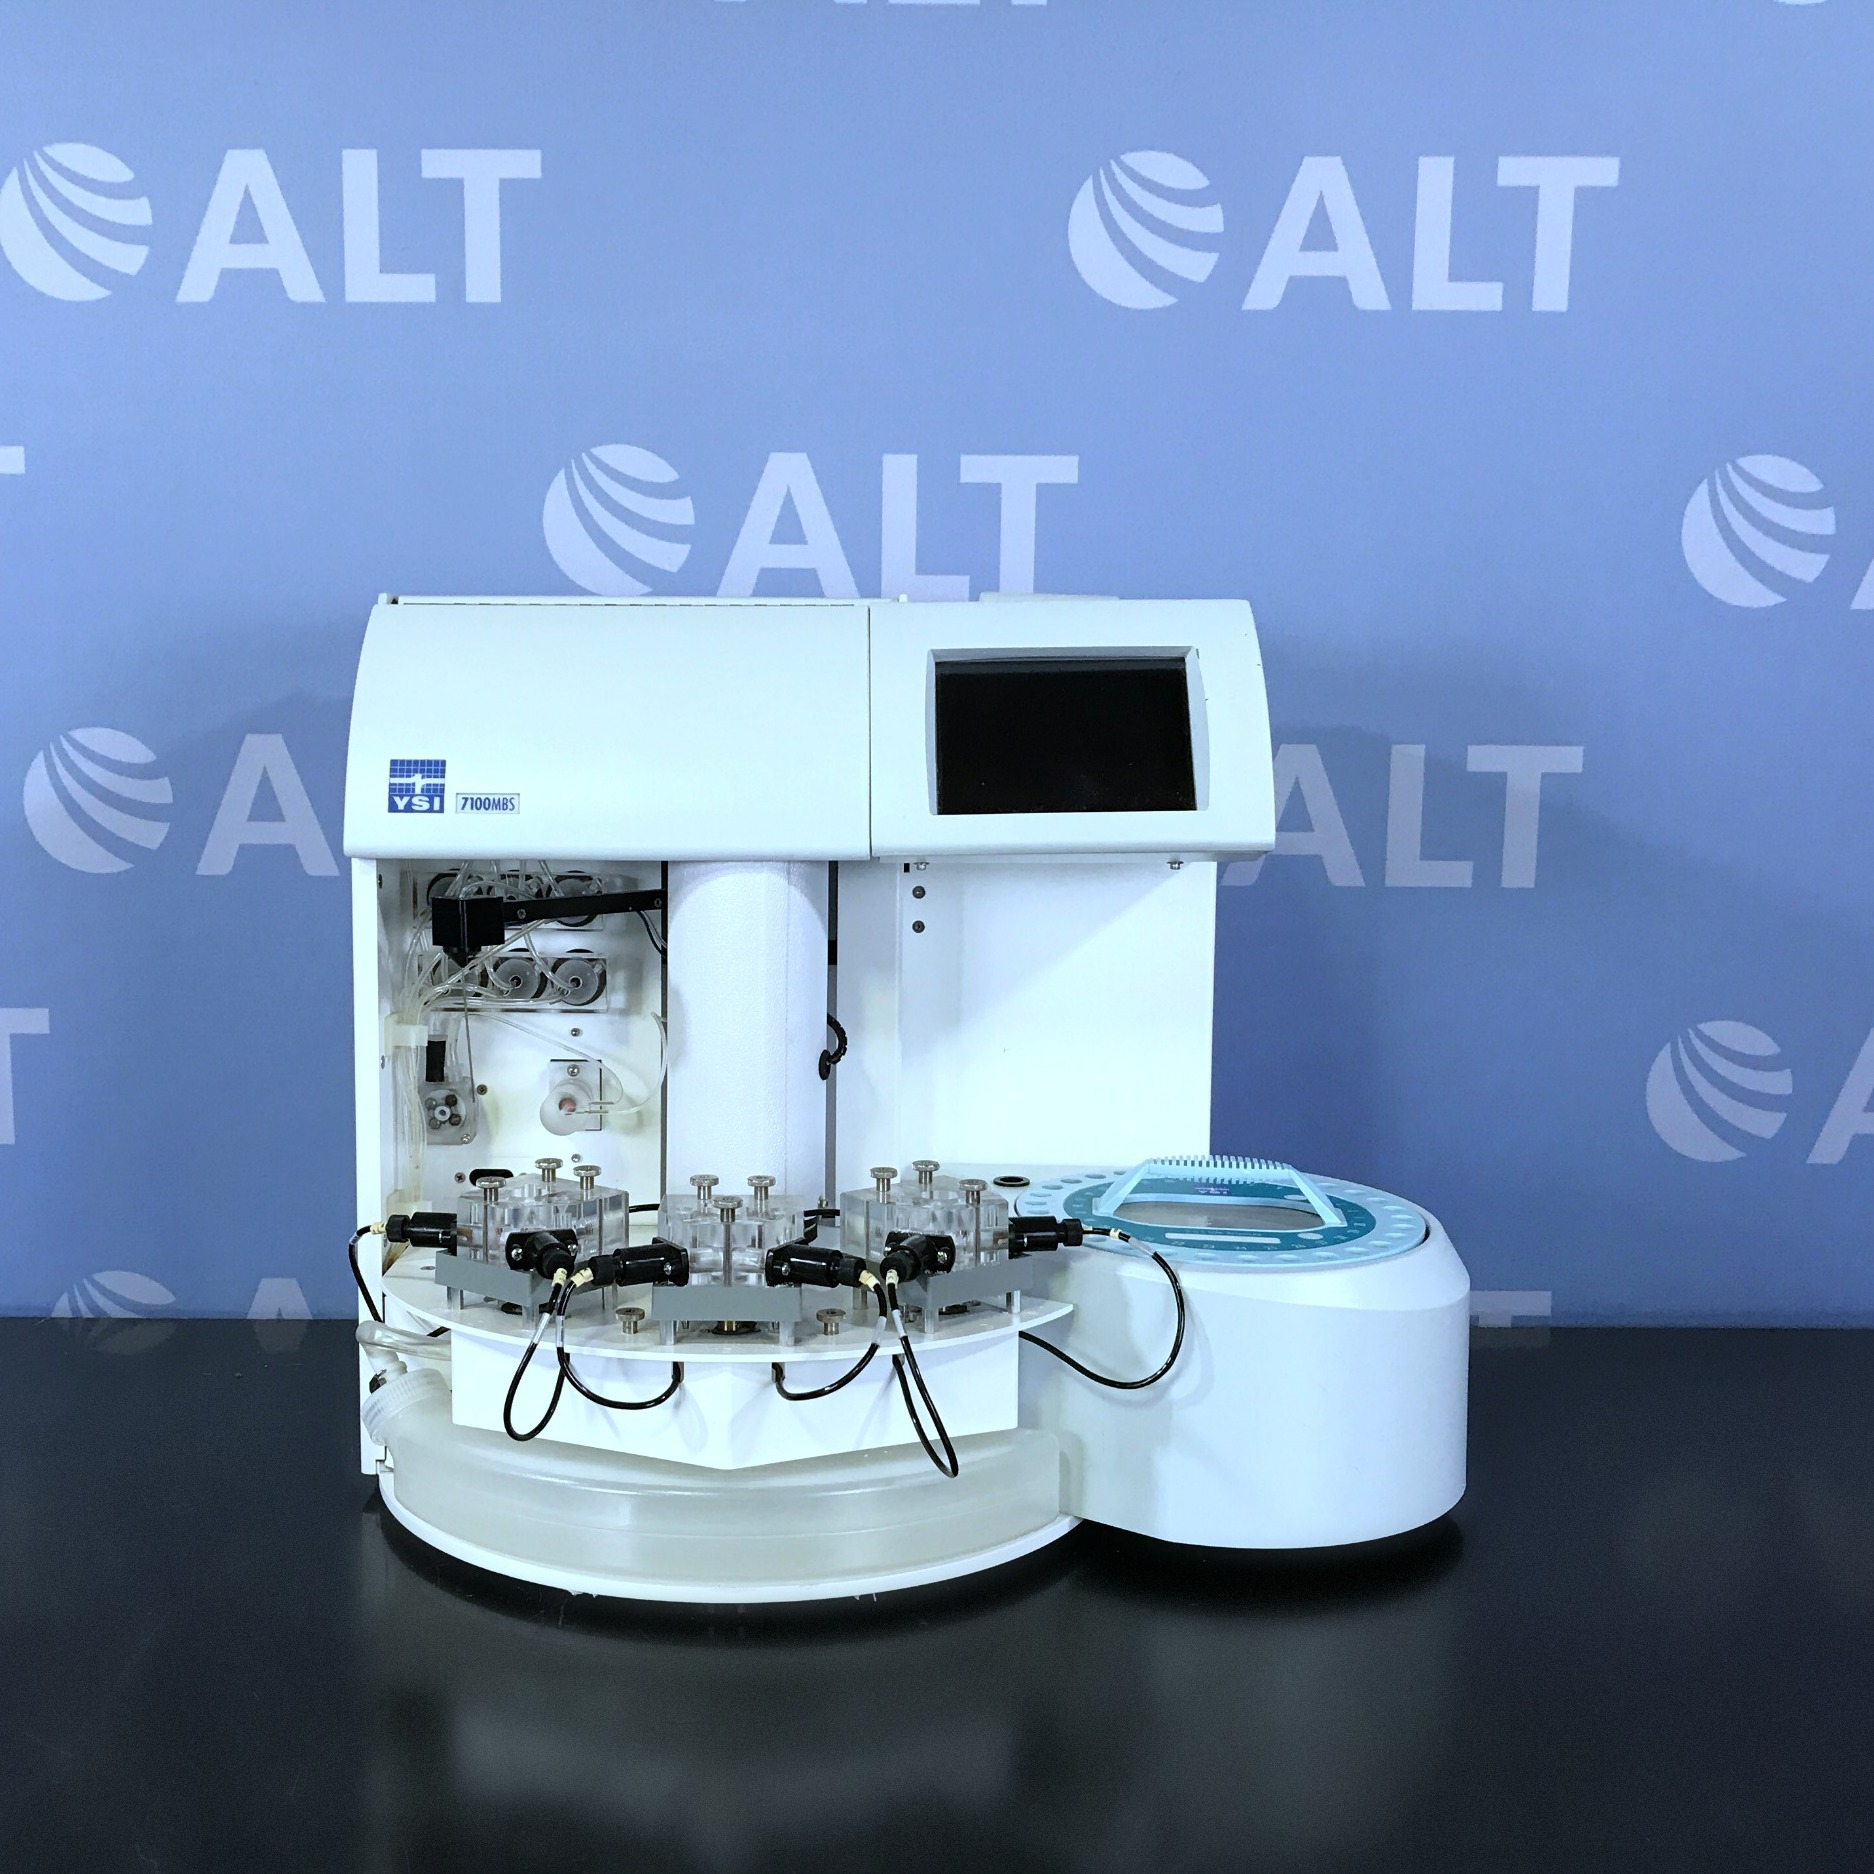 YSI 7100MBS Multiparameter Bioanalytical System Image